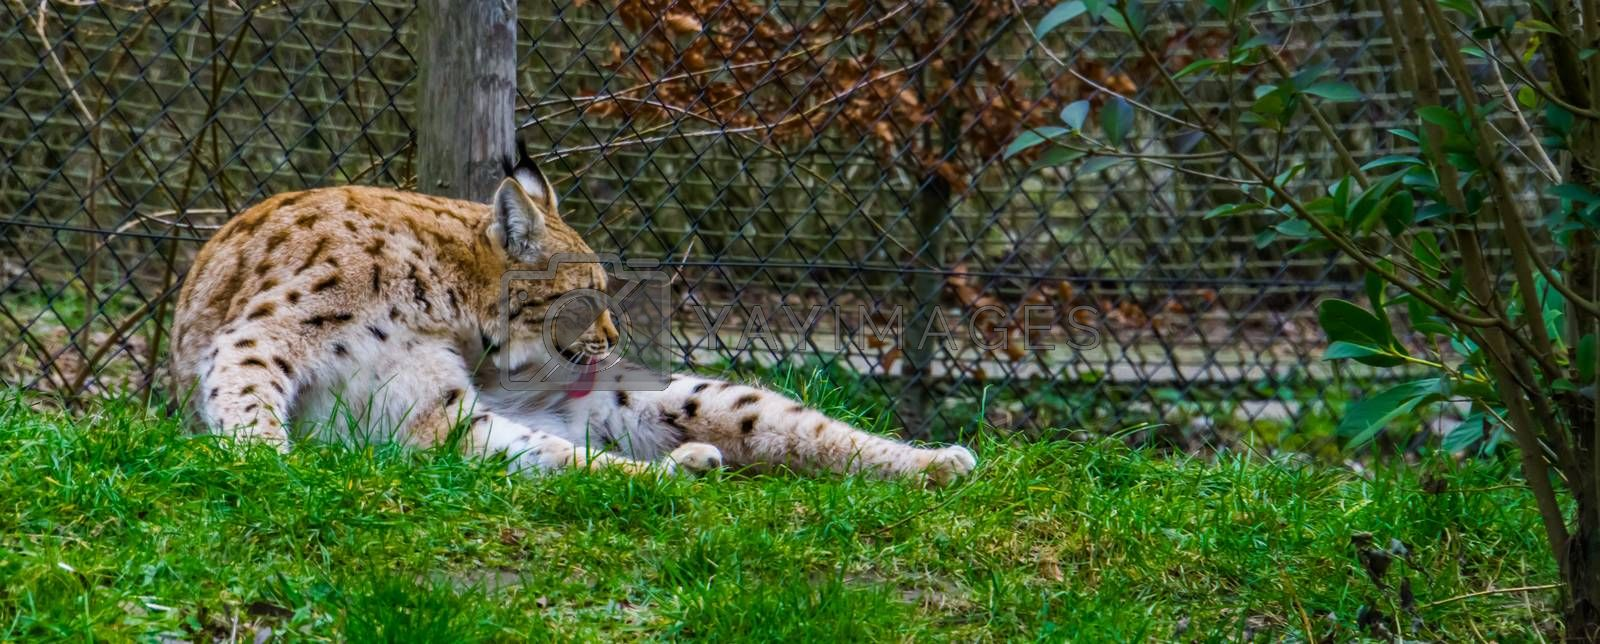 Eurasian lynx laying in the grass and cleaning its hair fur by licking